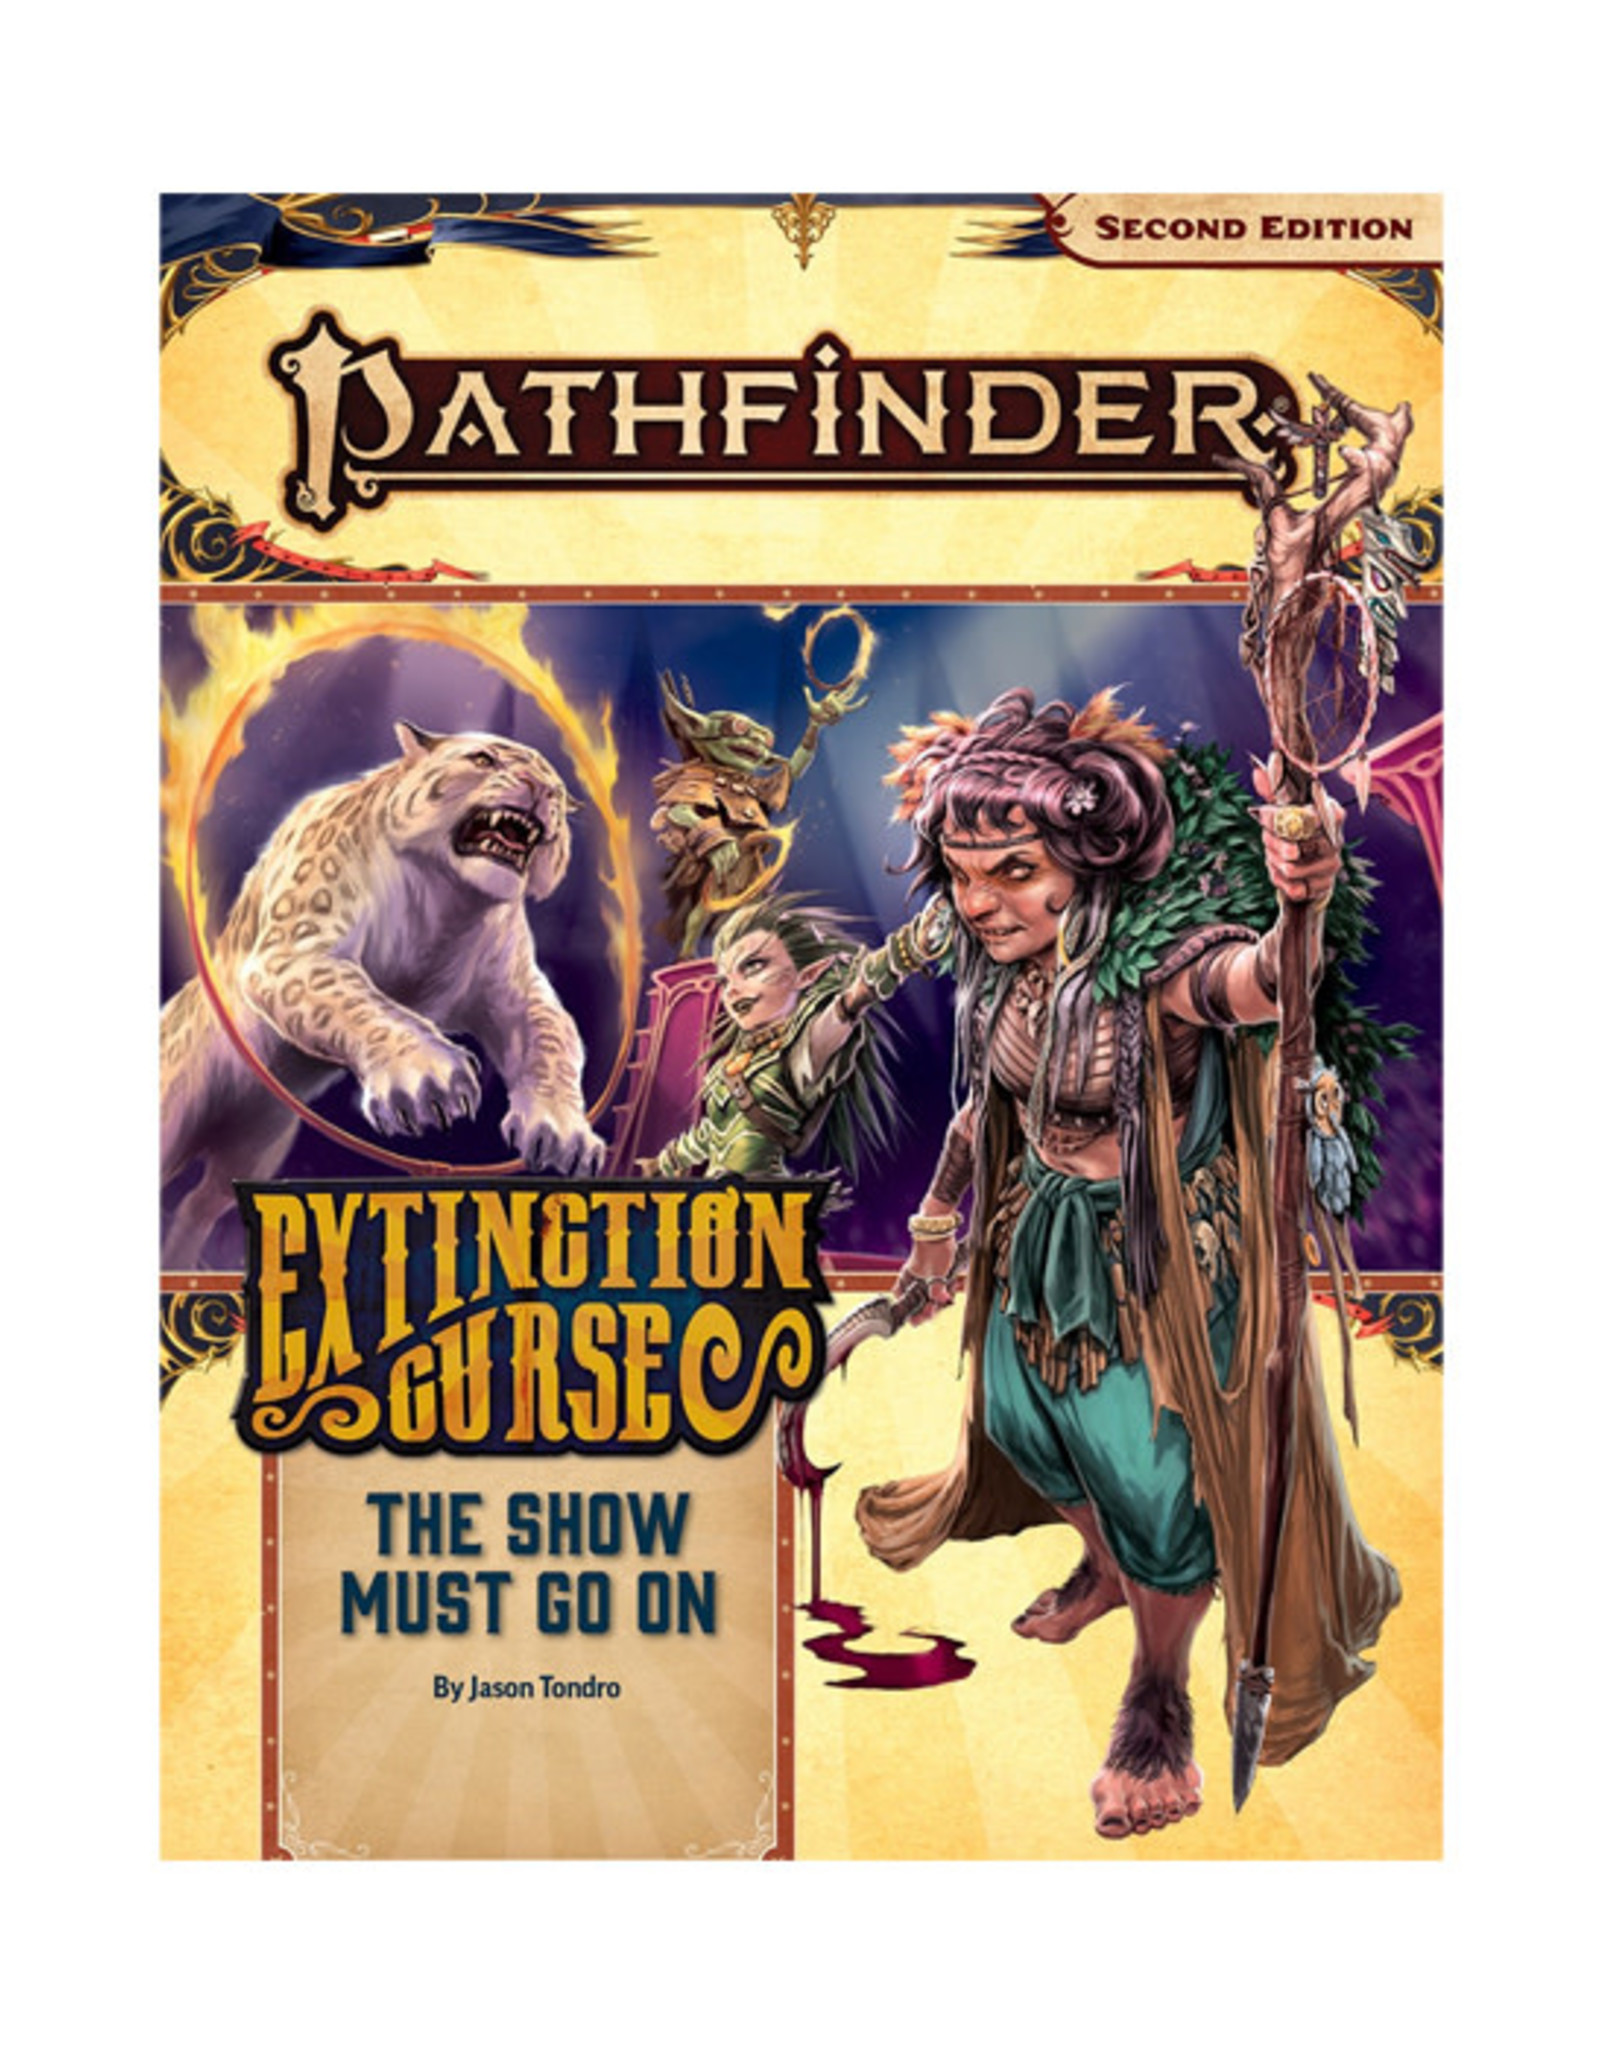 Pathfinder Pathfinder: 2nd Edition - Adventure Path - Extinction Curse - The Show Must Go On